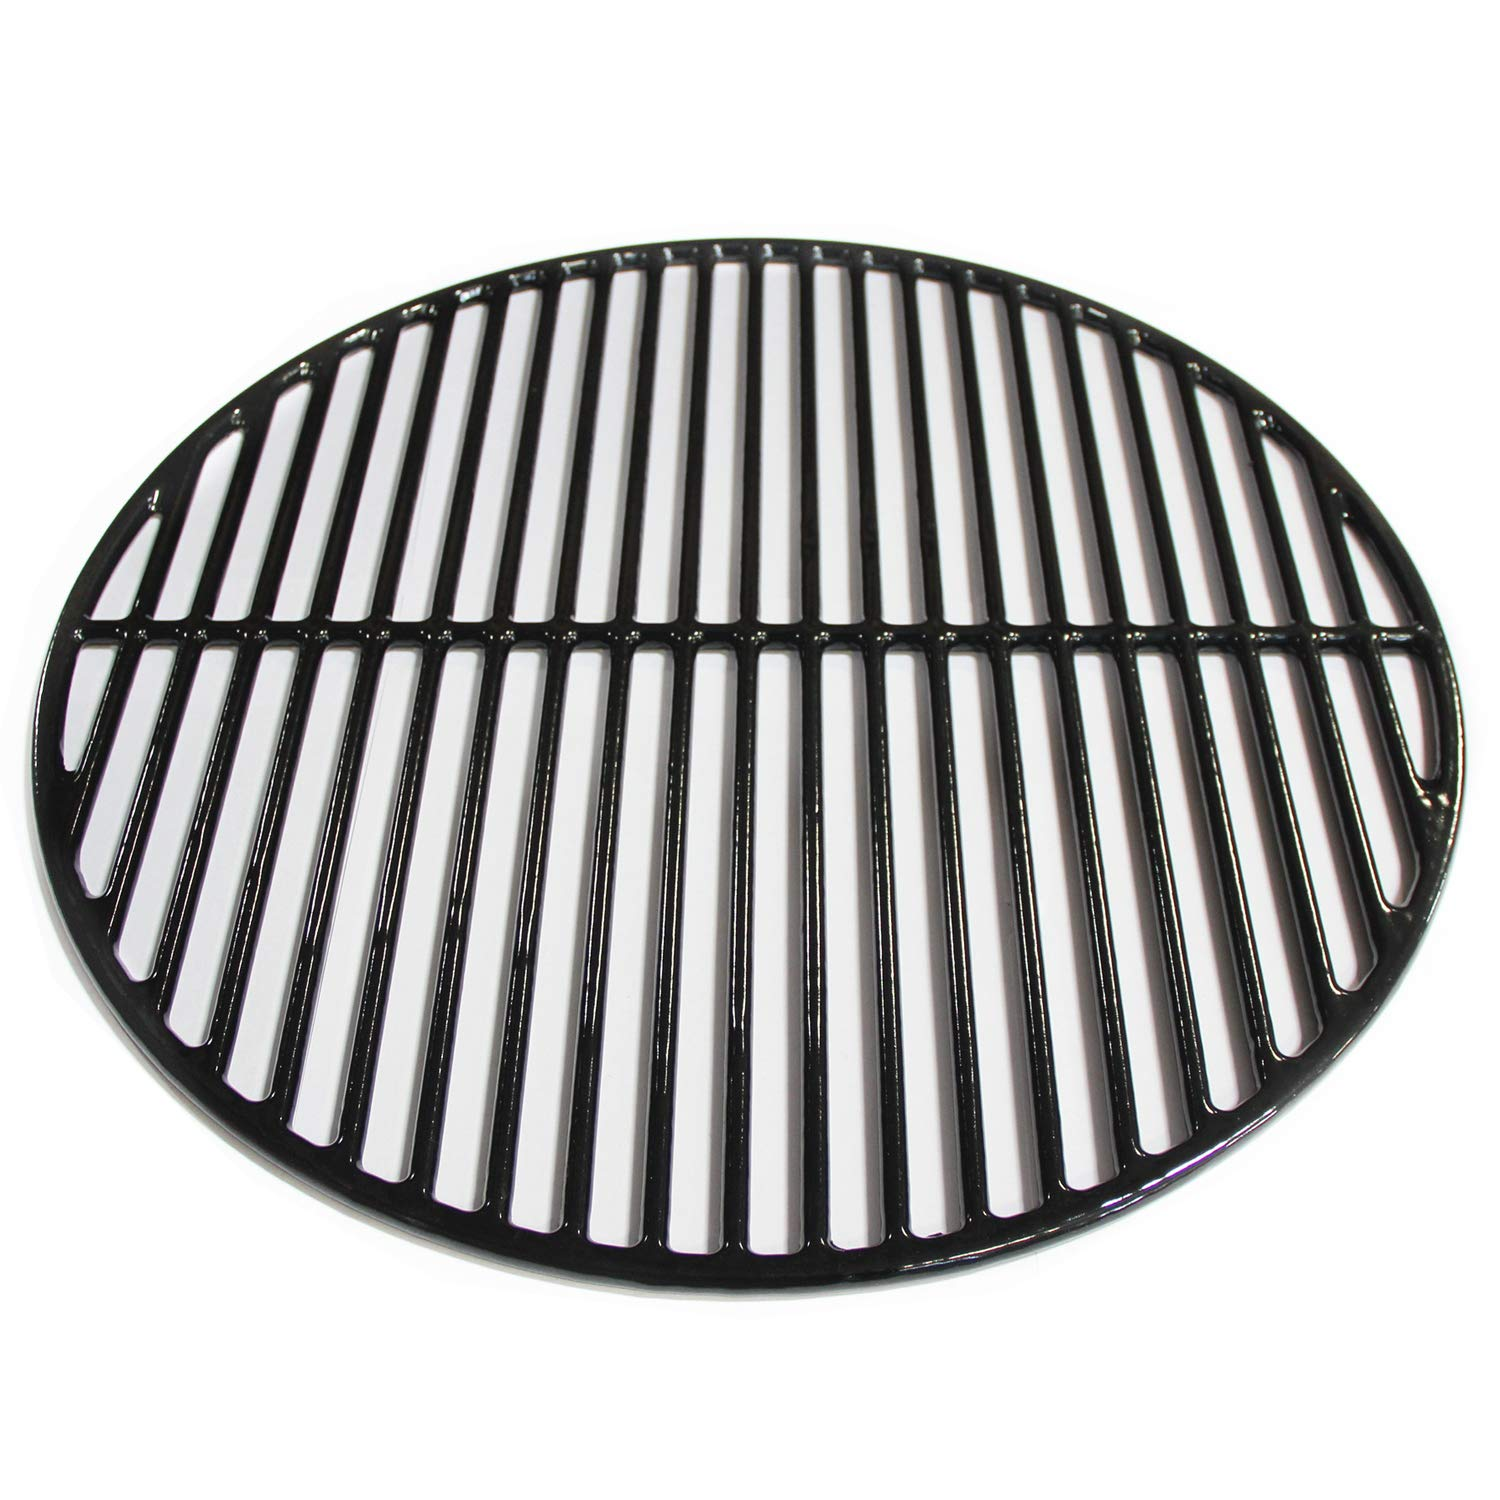 Hongso PCI991 Porcelain Coated Cast Iron Cooking Grid Grate Replacement for Large Big Green Egg, Vision Grill VGKSS-CC2, B-11N1A1-Y2A Gas Grill, 18 3/16 Inch Diameter